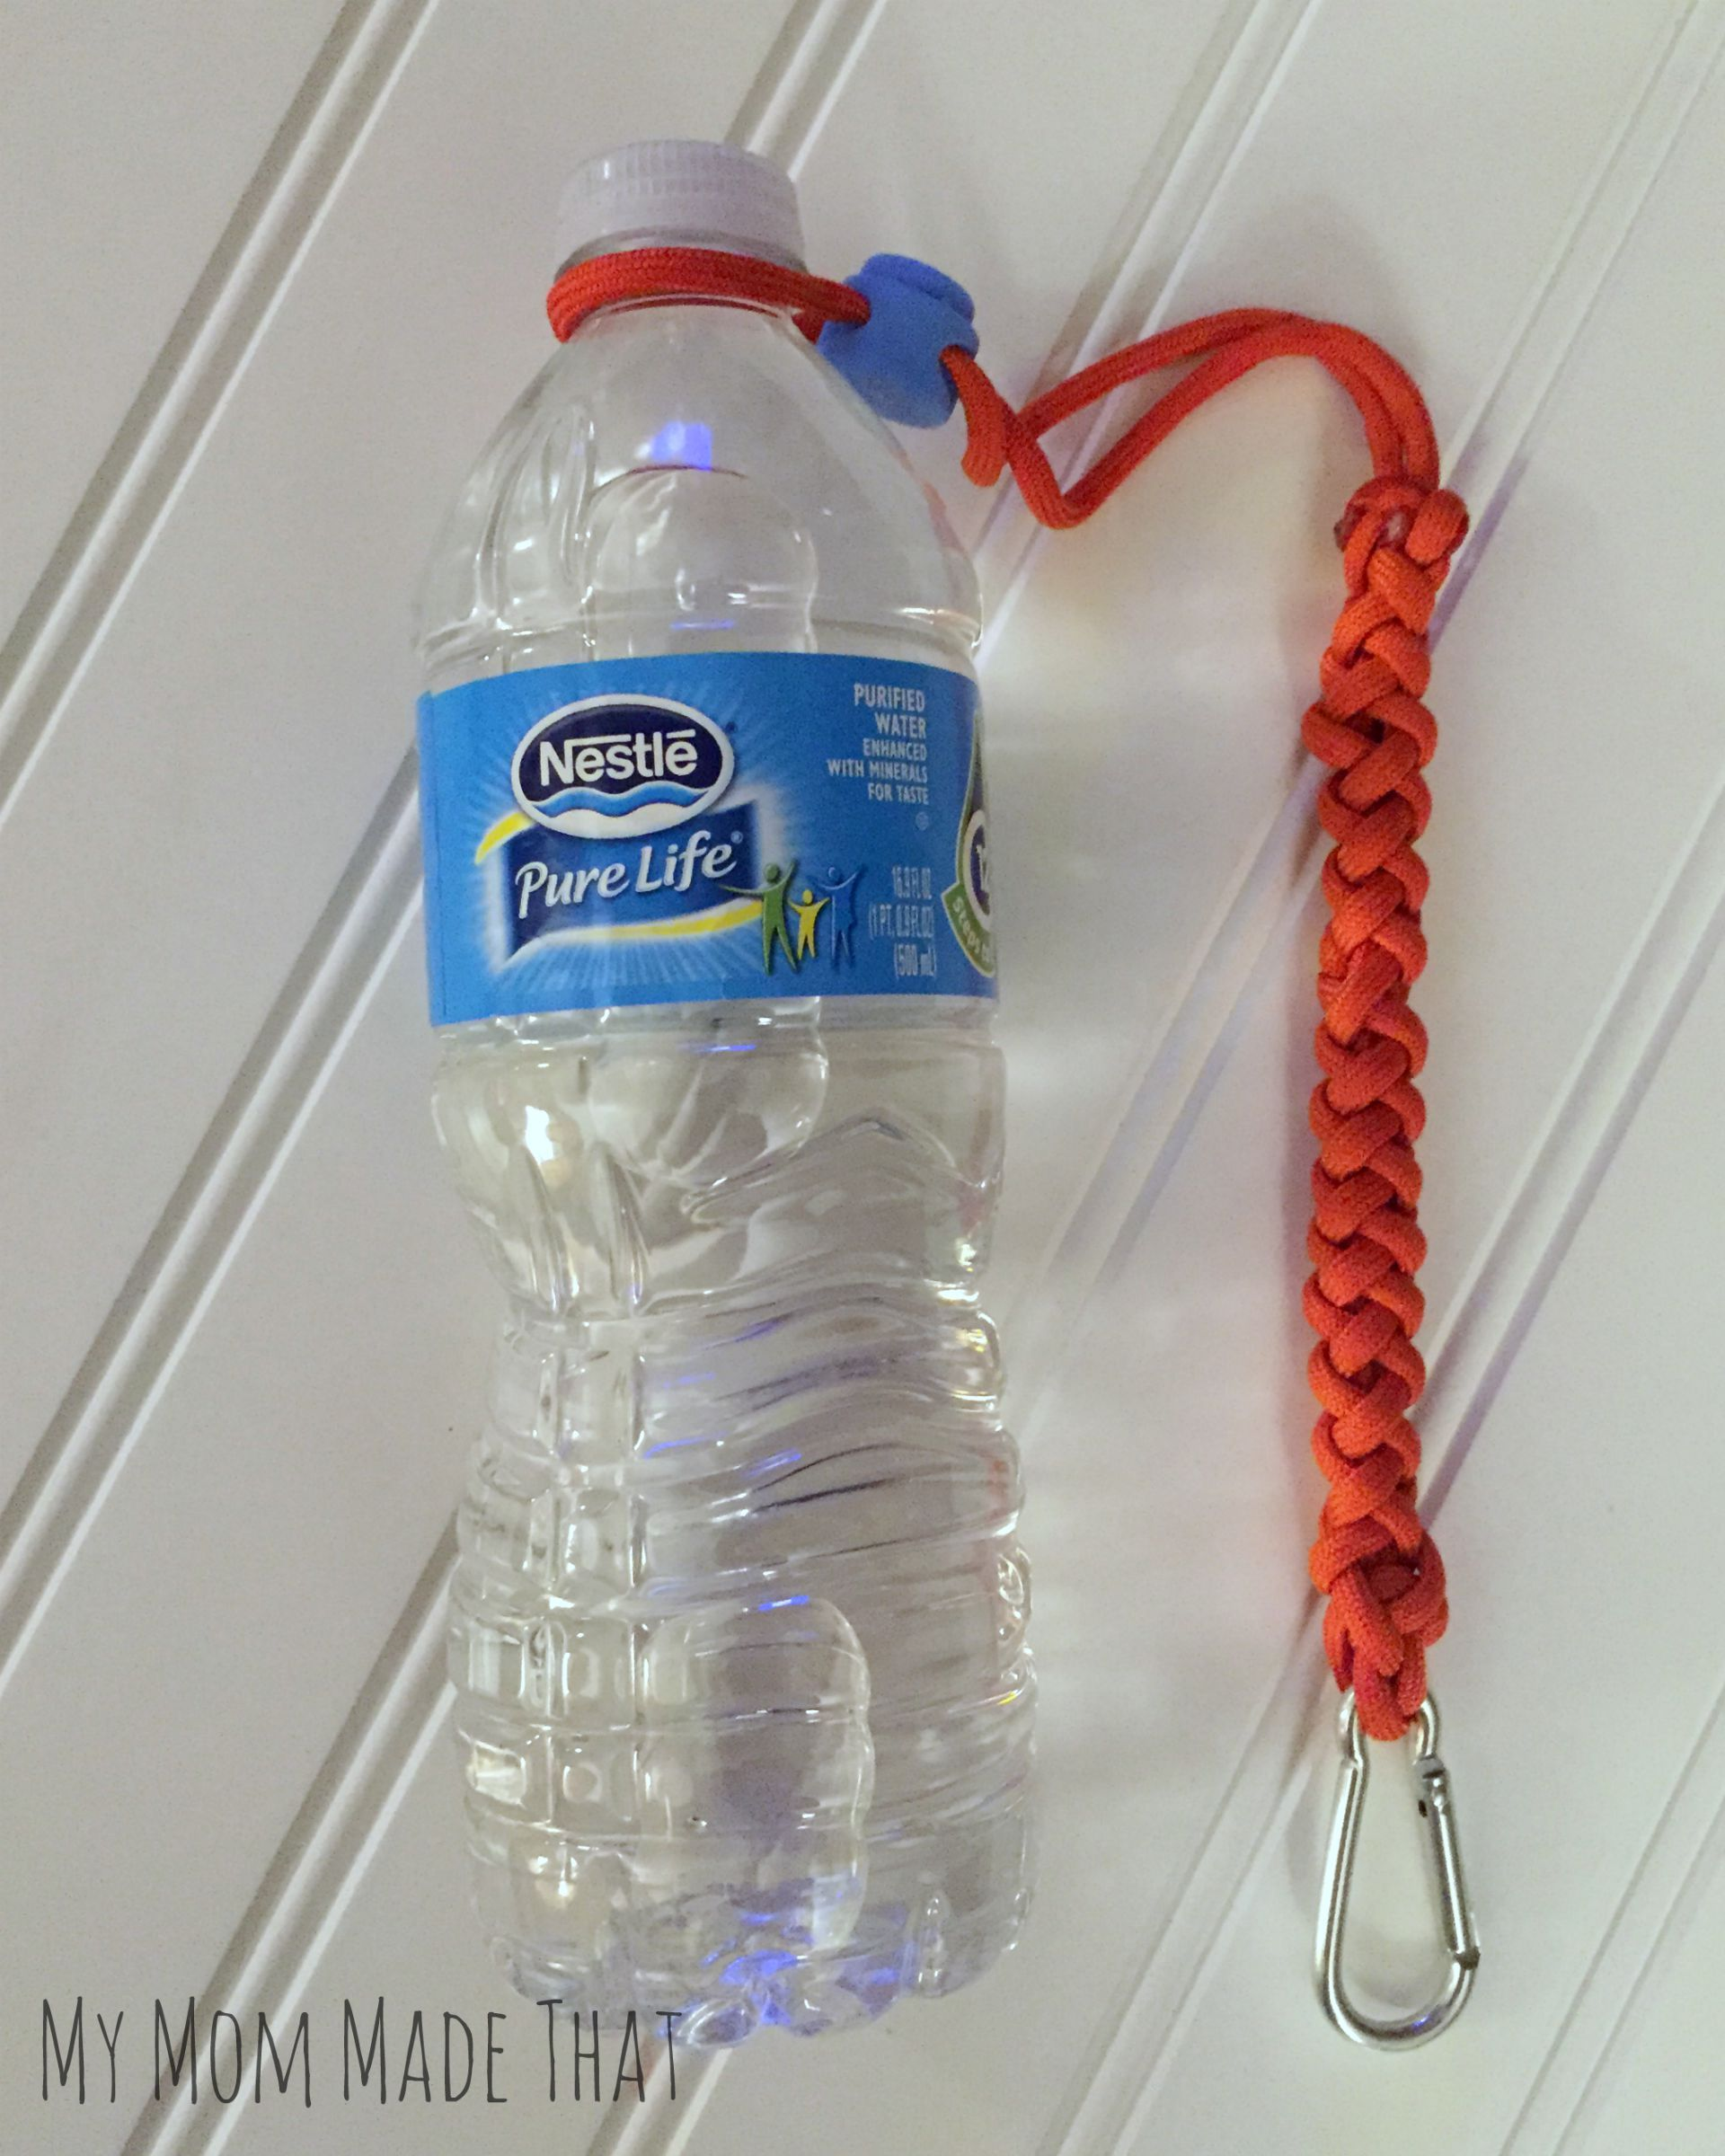 london isothermal bottle waste bracelet uk water zero blue wearth